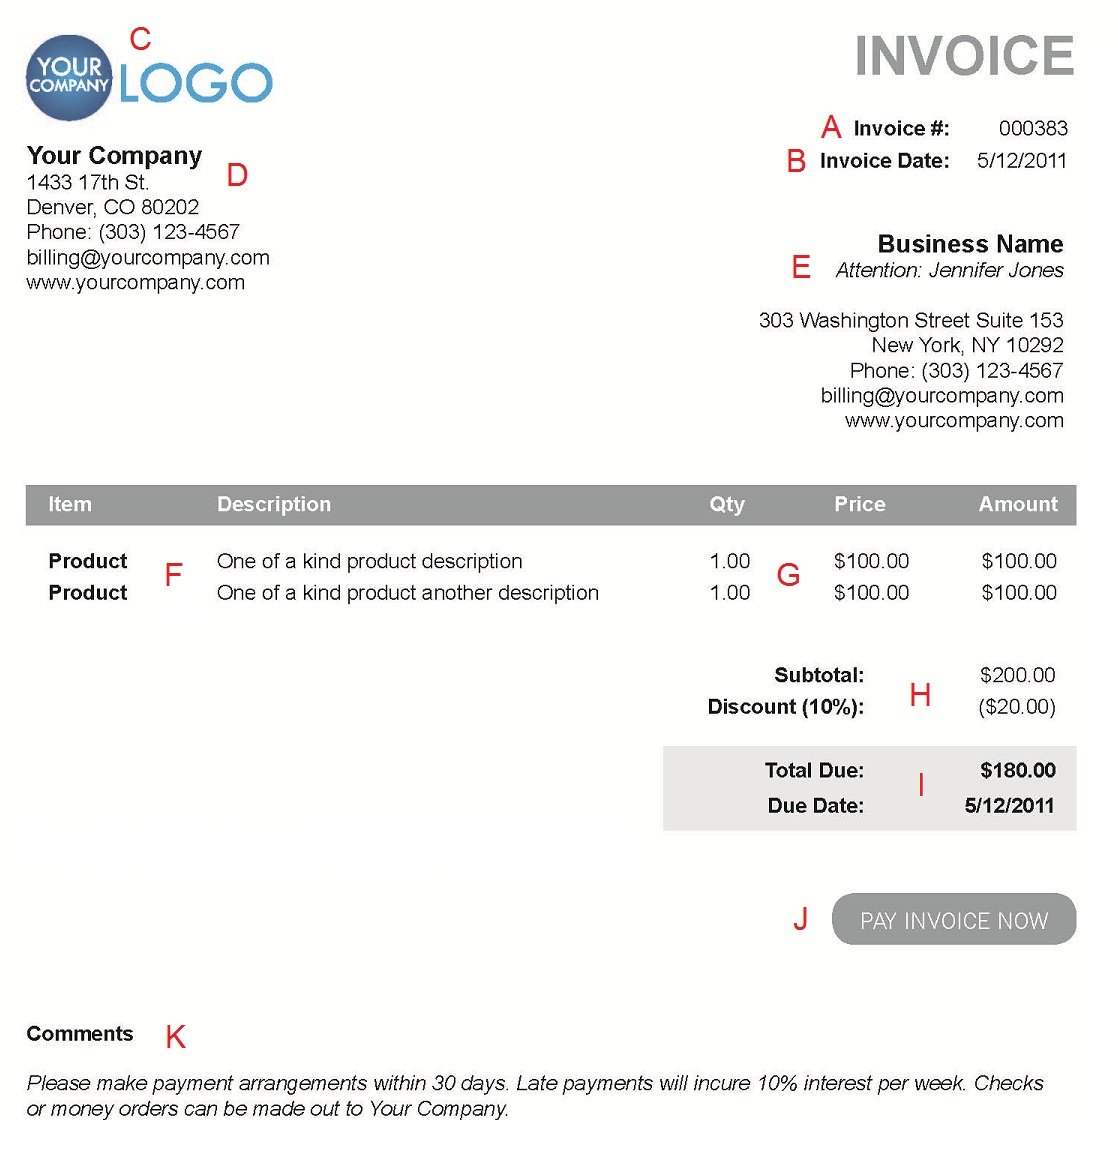 Soulfulpowerus  Nice The  Different Sections Of An Electronic Payment Invoice With Outstanding A  With Agreeable Sample Contractor Invoice Also Invoice Organizer In Addition Car Dealer Invoice Price And Mock Invoice As Well As Generic Invoice Form Additionally Send An Invoice Through Paypal From Paysimplecom With Soulfulpowerus  Outstanding The  Different Sections Of An Electronic Payment Invoice With Agreeable A  And Nice Sample Contractor Invoice Also Invoice Organizer In Addition Car Dealer Invoice Price From Paysimplecom